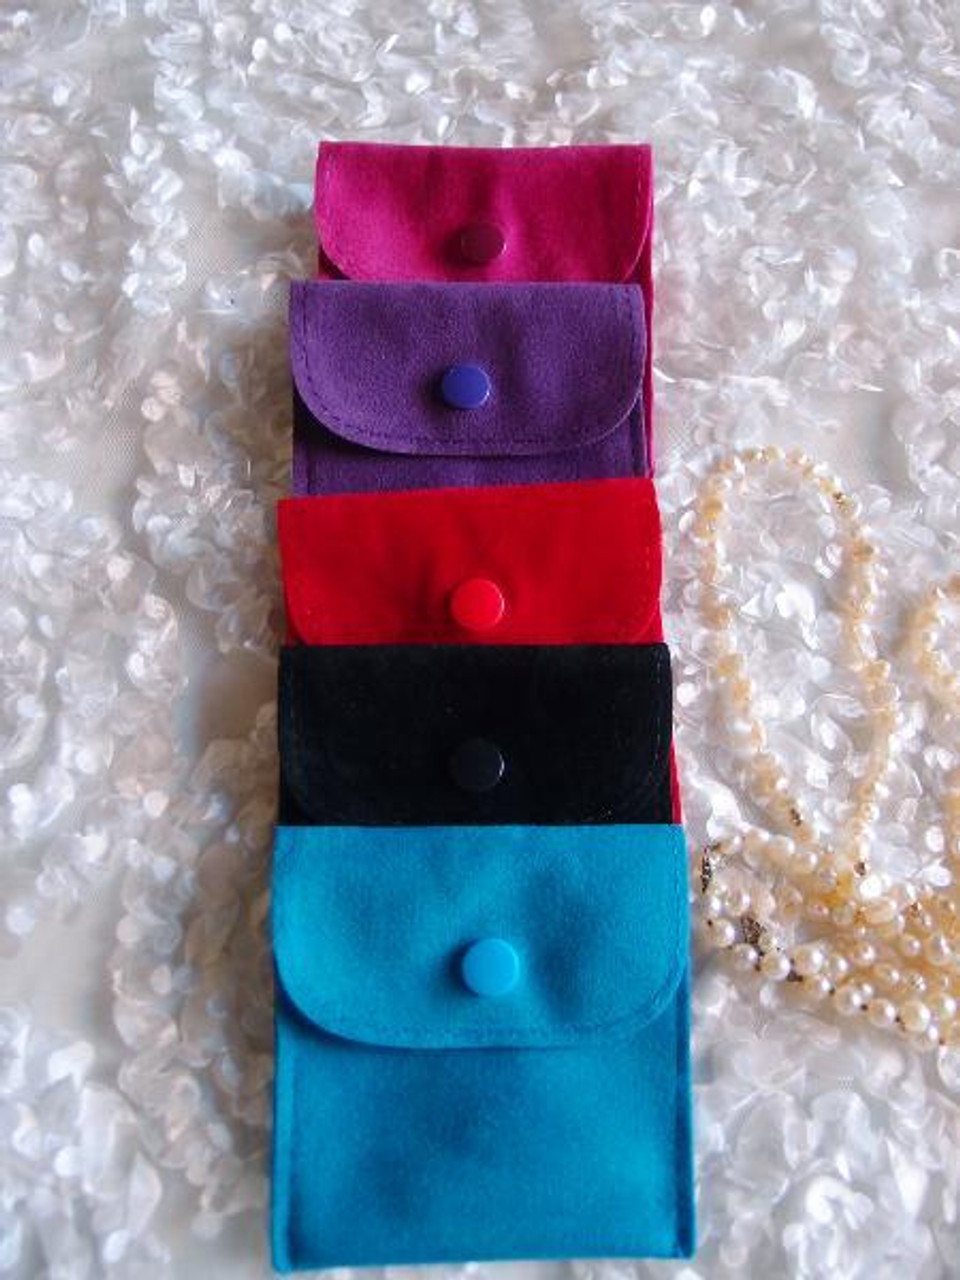 3 x 3 inches Peacock Blue Velvet Flapover Jewelry Pouch with Snap Fastener (J134-85), Wholesale Velvet Jewelry Bags   Packaging Decor, Gift Packaging